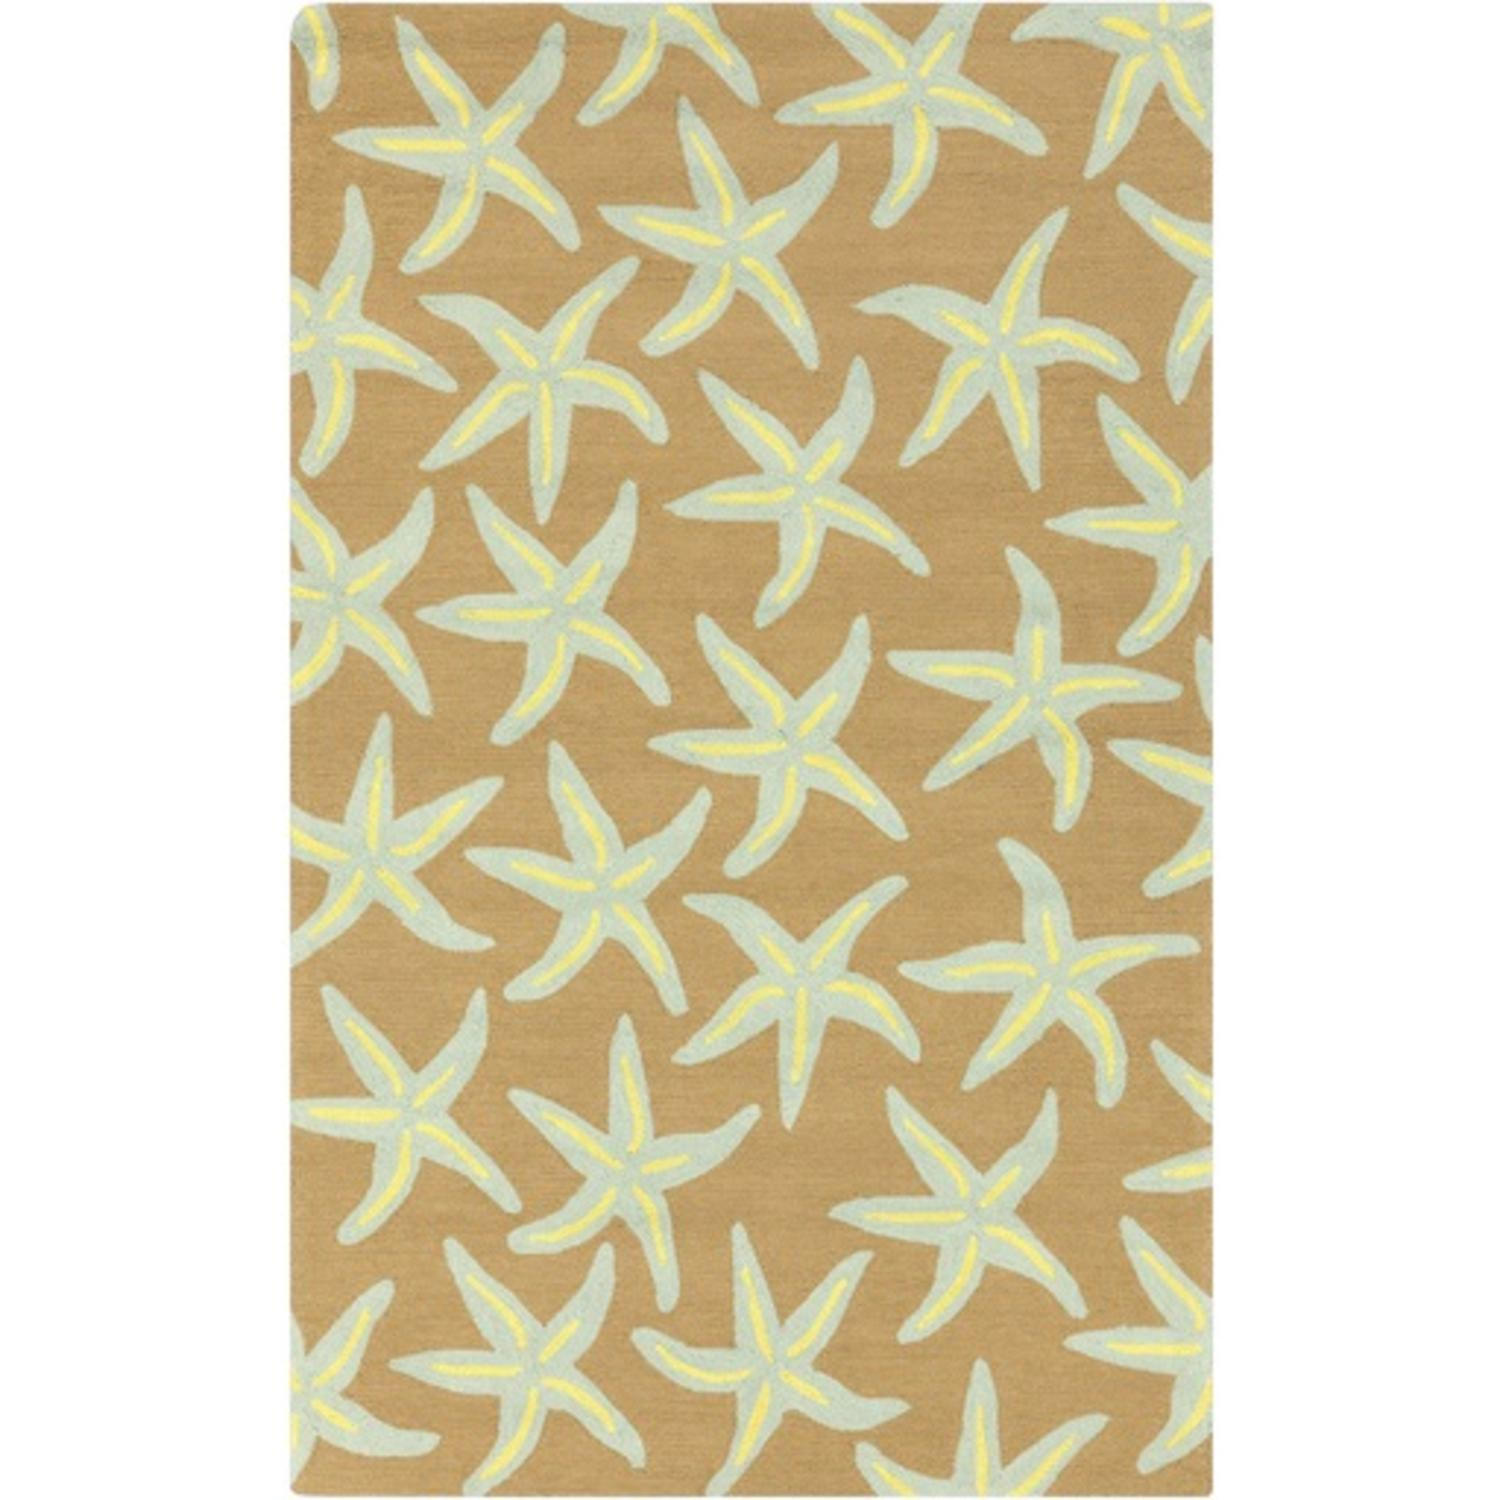 3' x 5' Starfish Delight Taupe and Off-White Hand Hooked Outdoor Patio Area Throw Rug